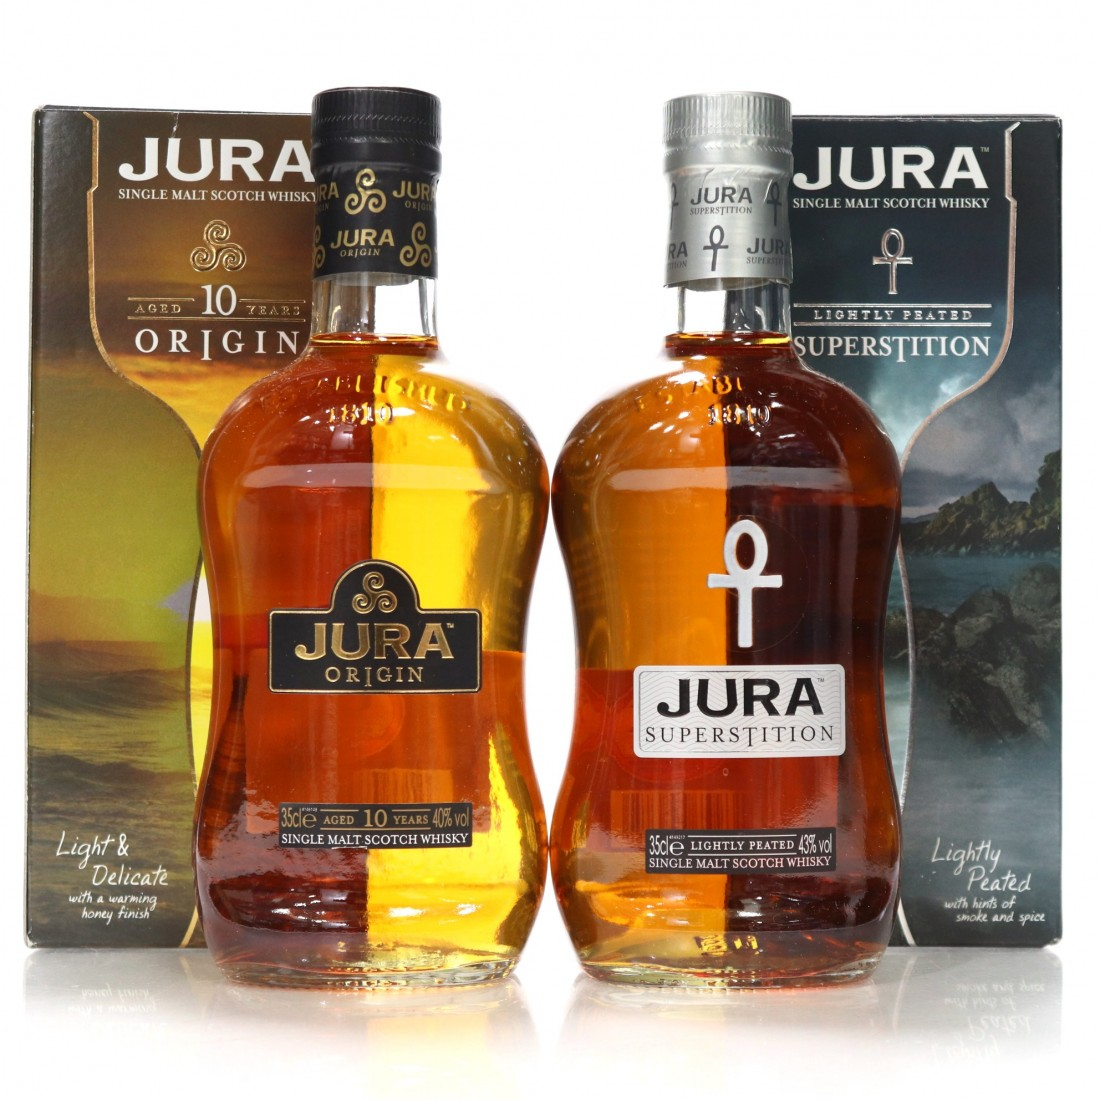 Jura 10 Year Old & Superstition 2 x 35cl